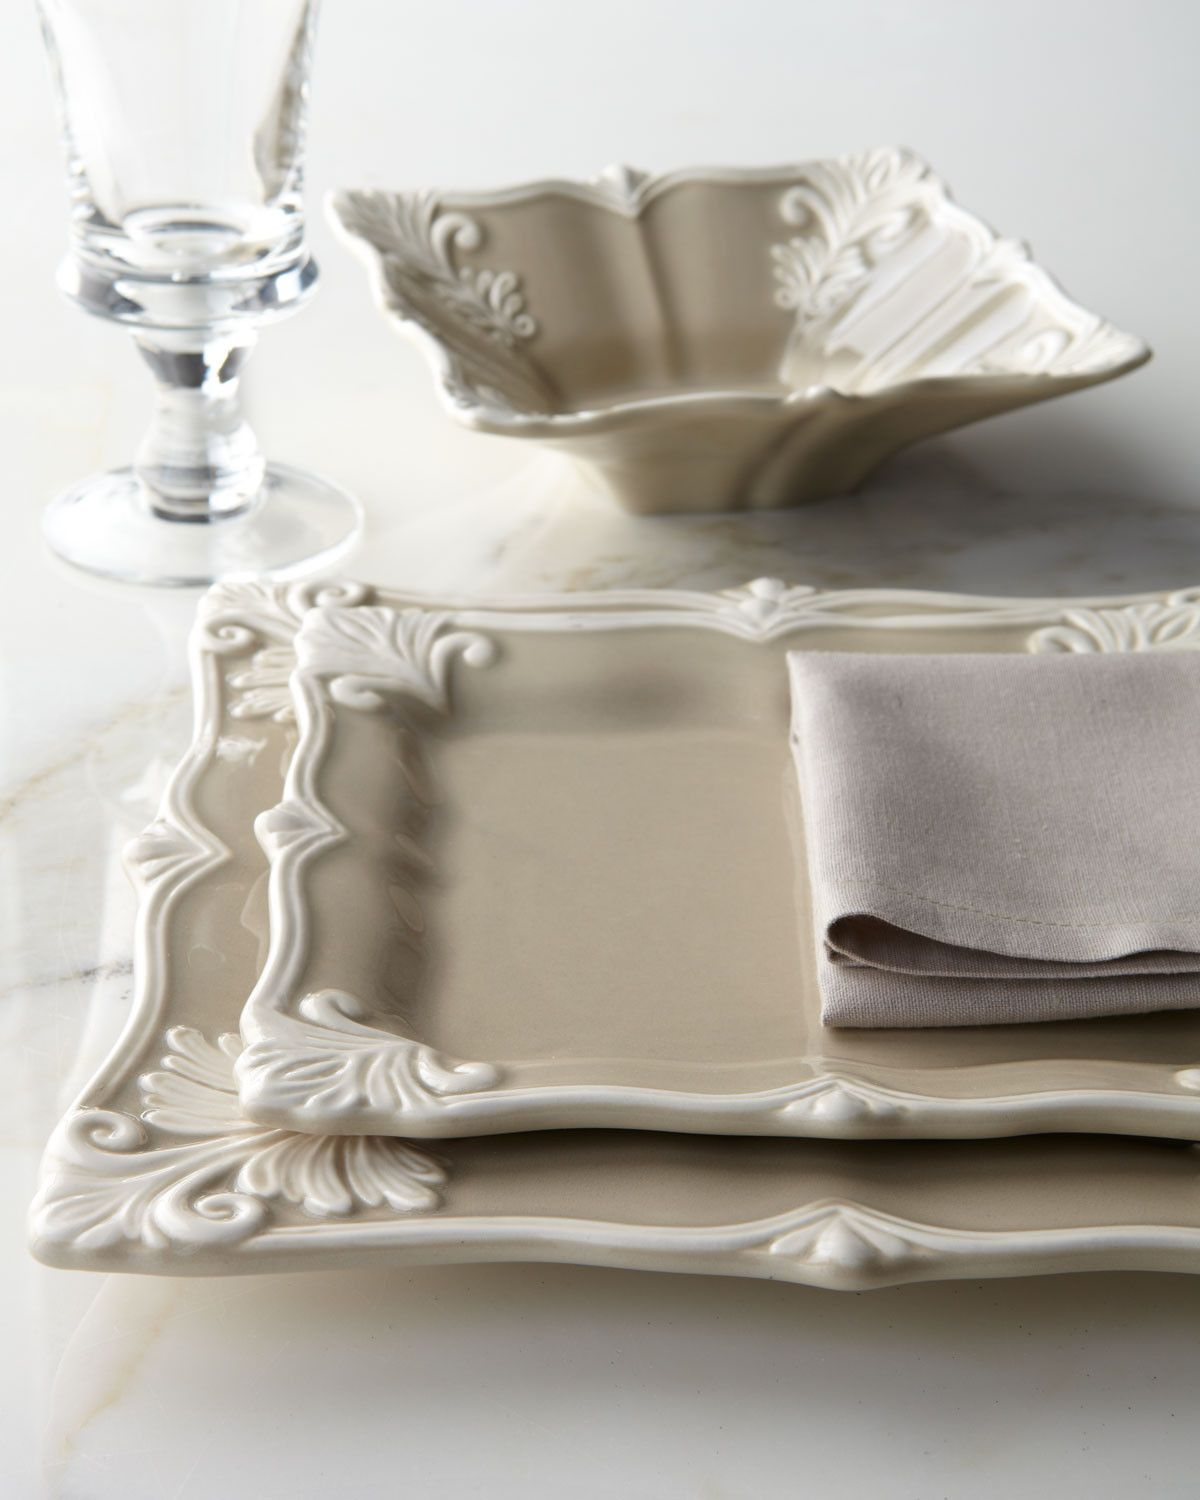 12-Piece Square Baroque Dinnerware Service & 12-Piece Square Baroque Dinnerware Service | kitchen | Pinterest ...